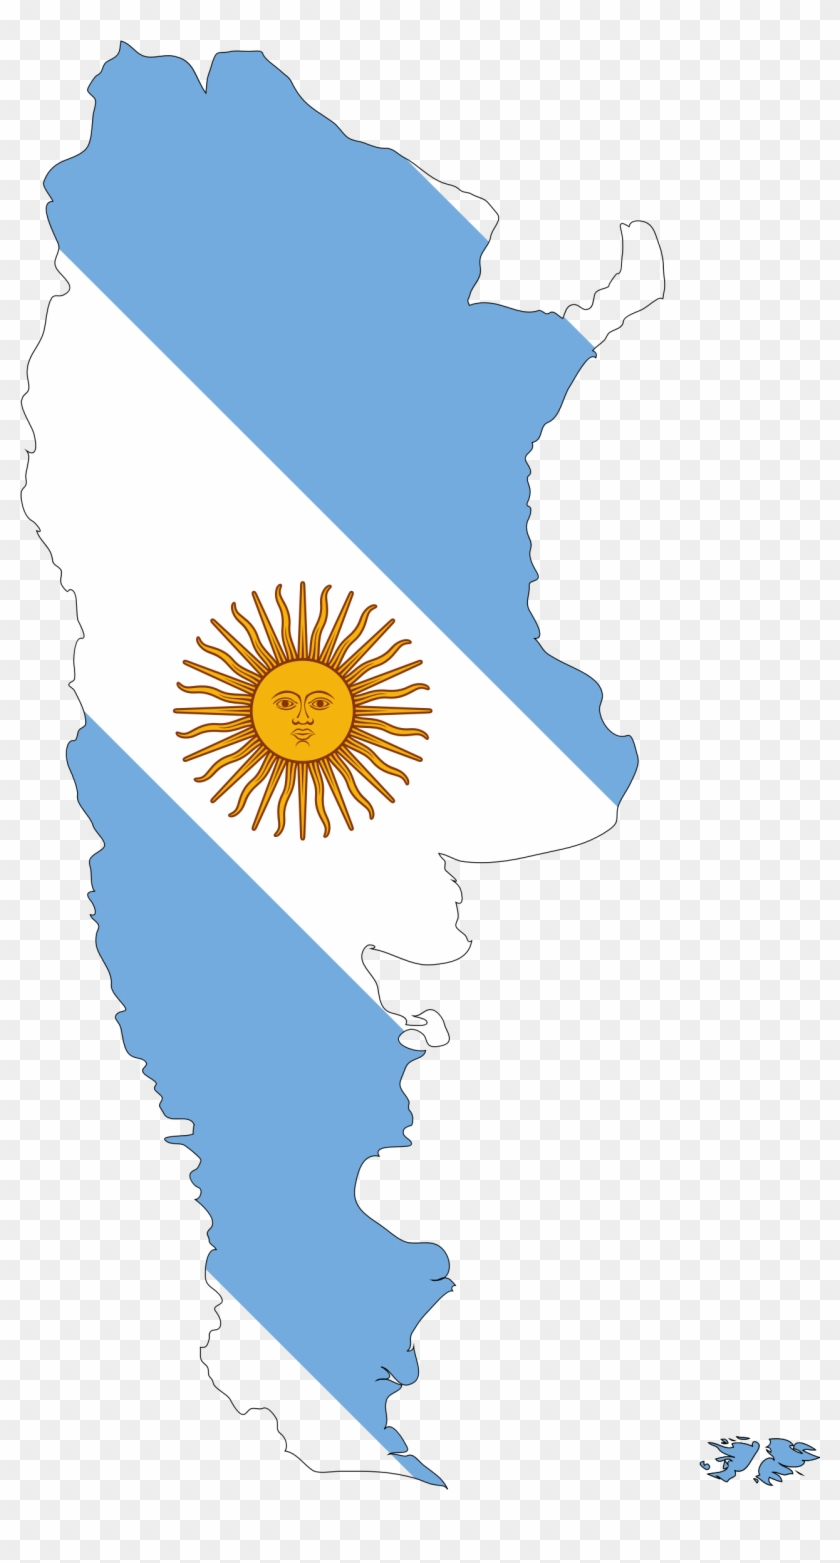 Argentina Map Clipart - Map And Flag Of Argentina - Free Transparent ...